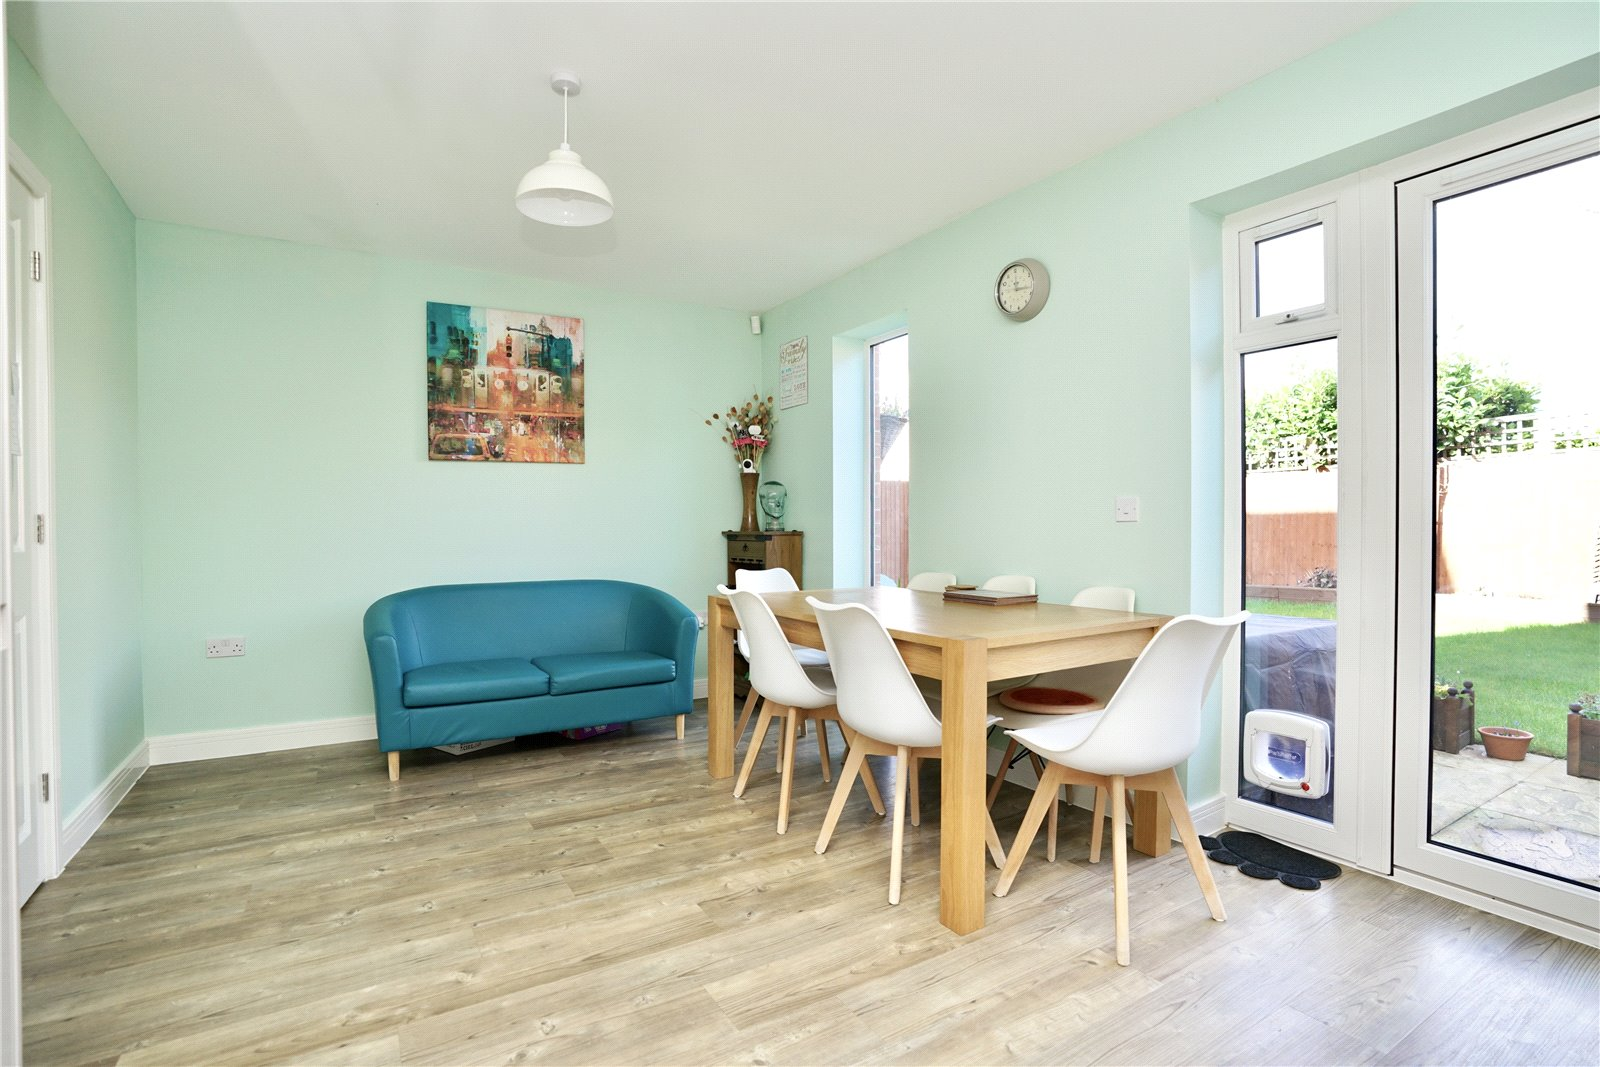 4 bed house for sale in Whinfell Close, Eaton Socon 4